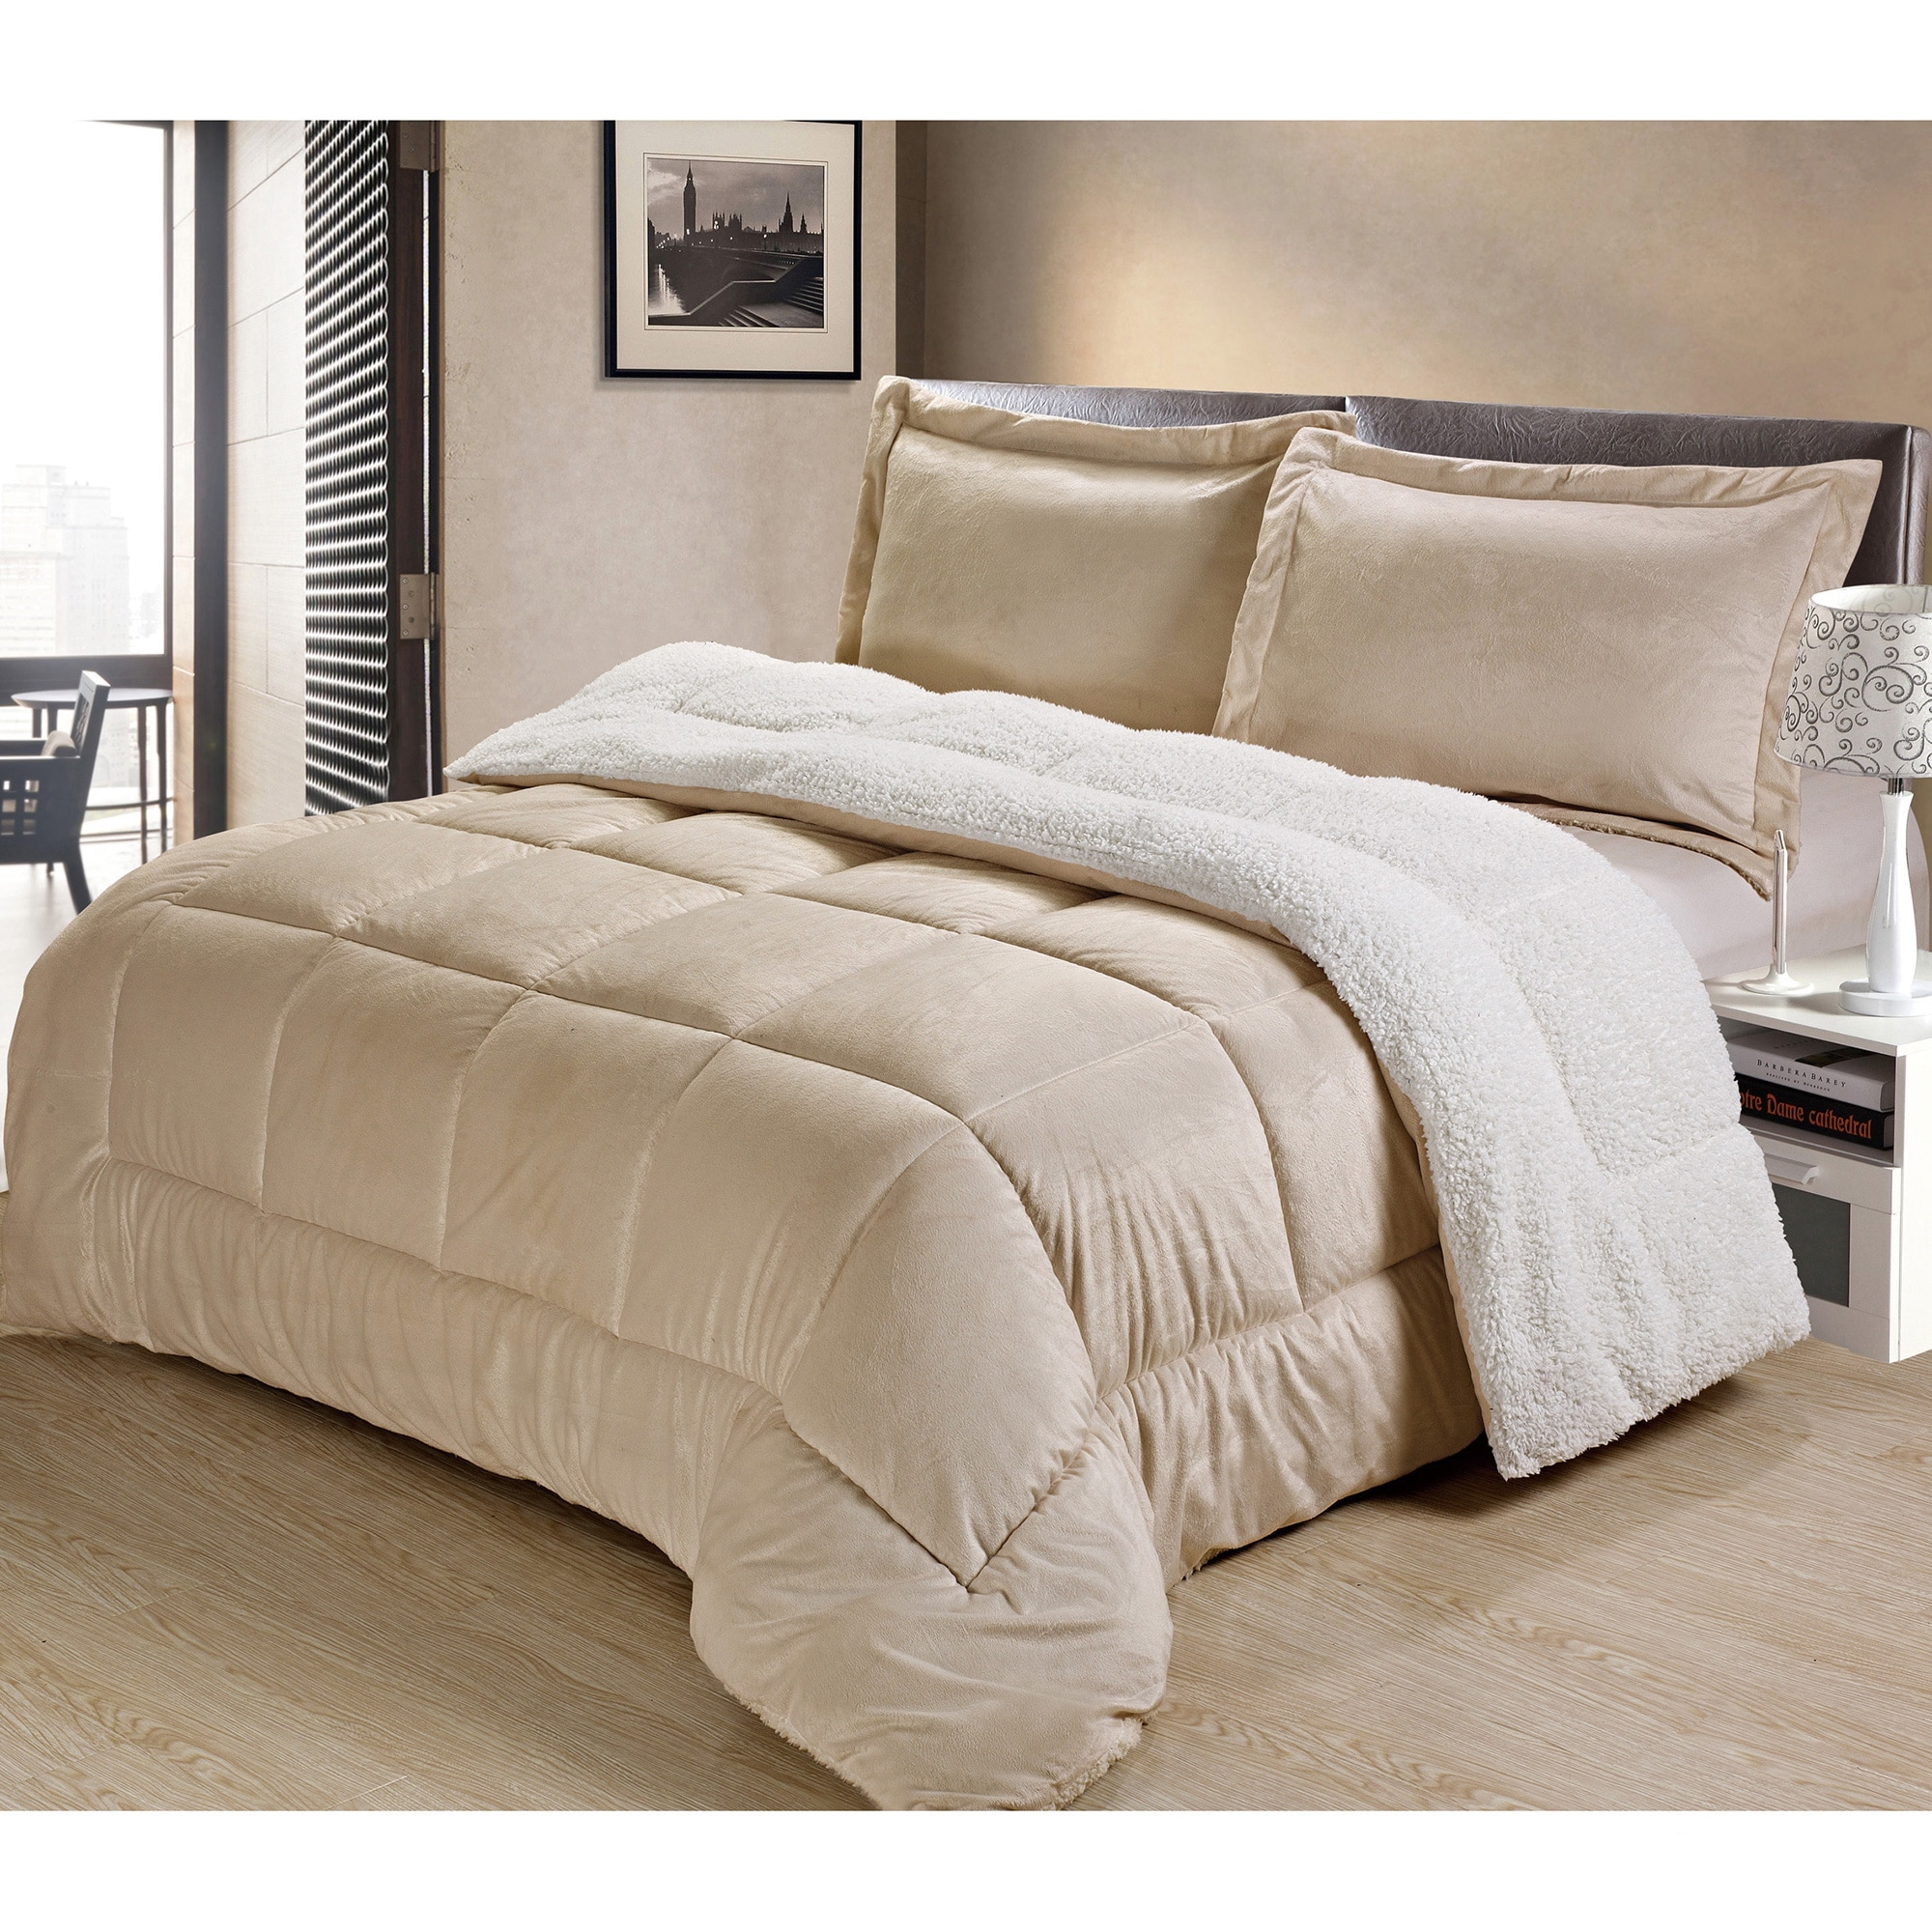 chic free suede shipping ultra kaiser bedding mink piece today micro set plush product grey comforter bath home overstock